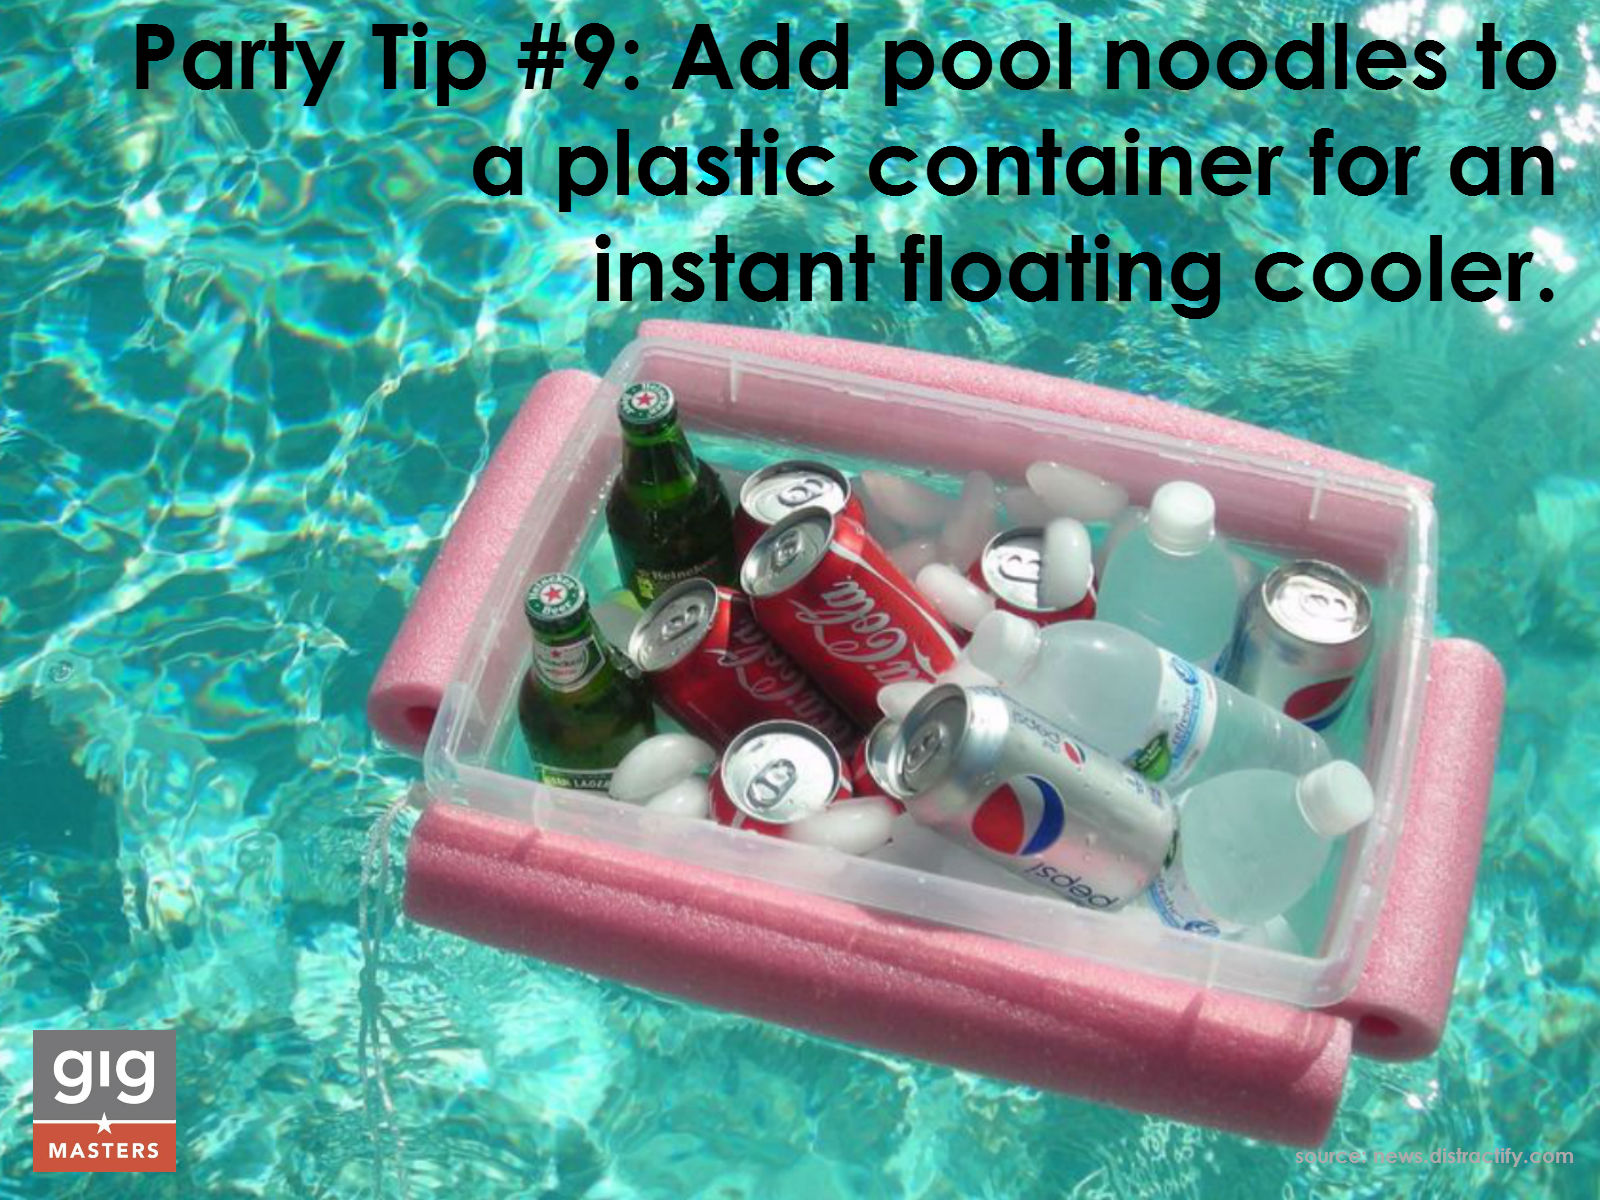 summer party tip - pool noodles for floating cooler